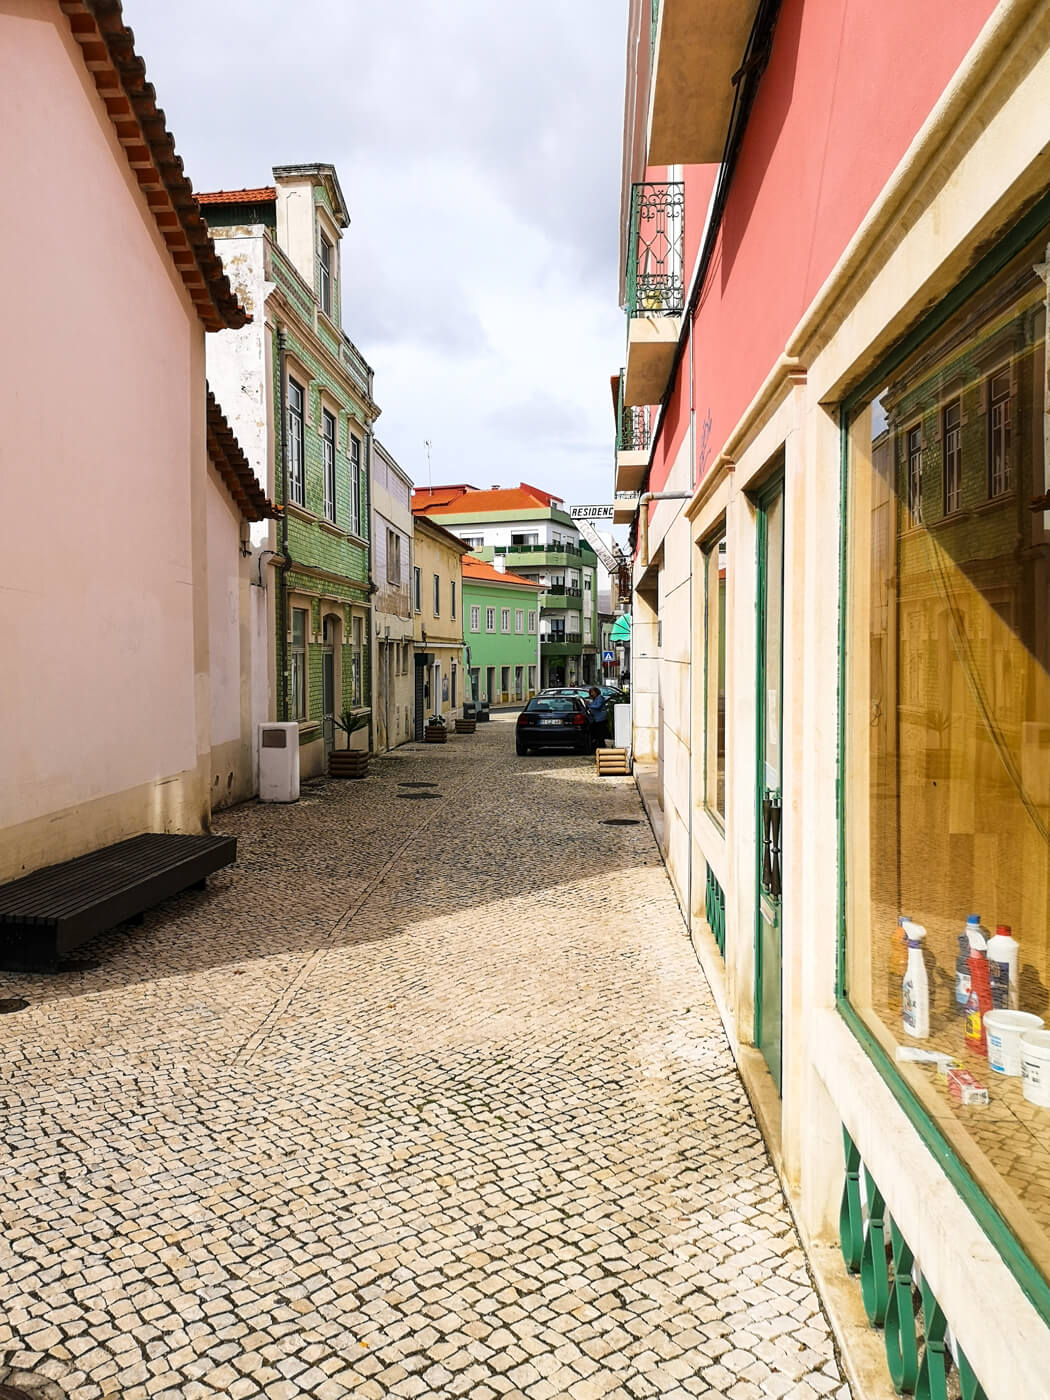 A cobblestone lane in the Caldas da Rainha town of Portugal. The buildings are painted baby pink and green.